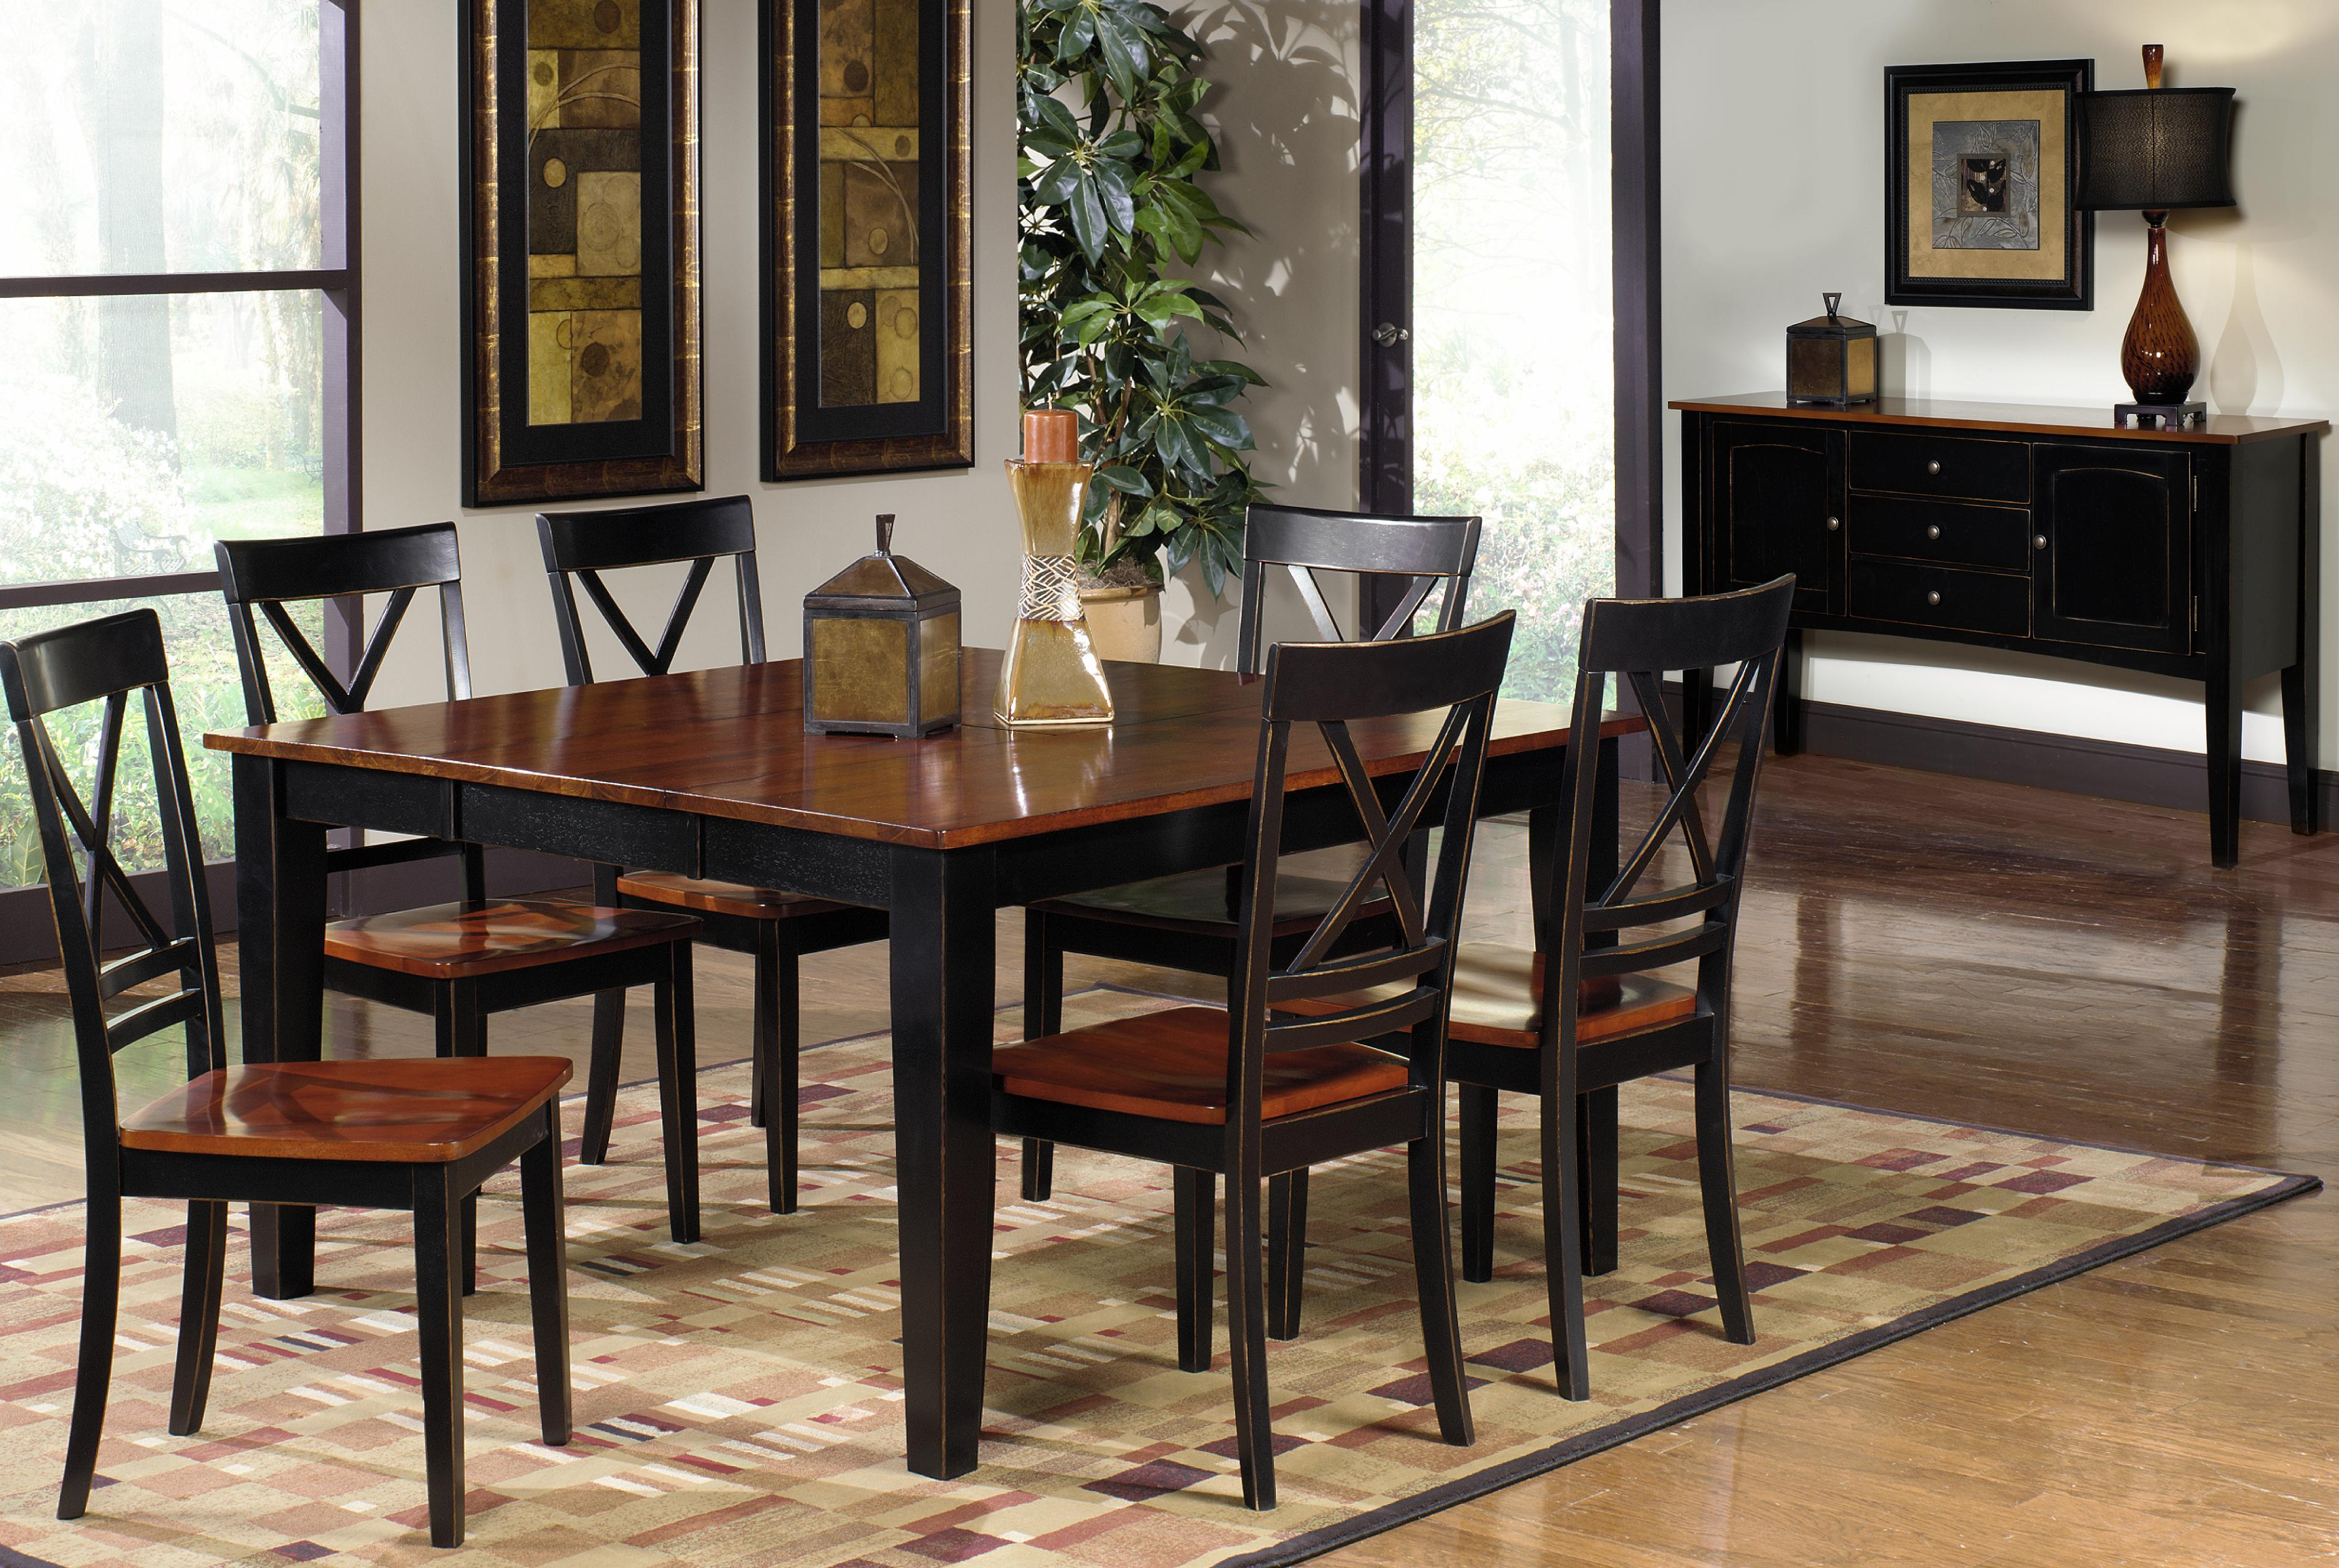 Progressive furniture cosmo casual dining room group for Casual dining room chairs